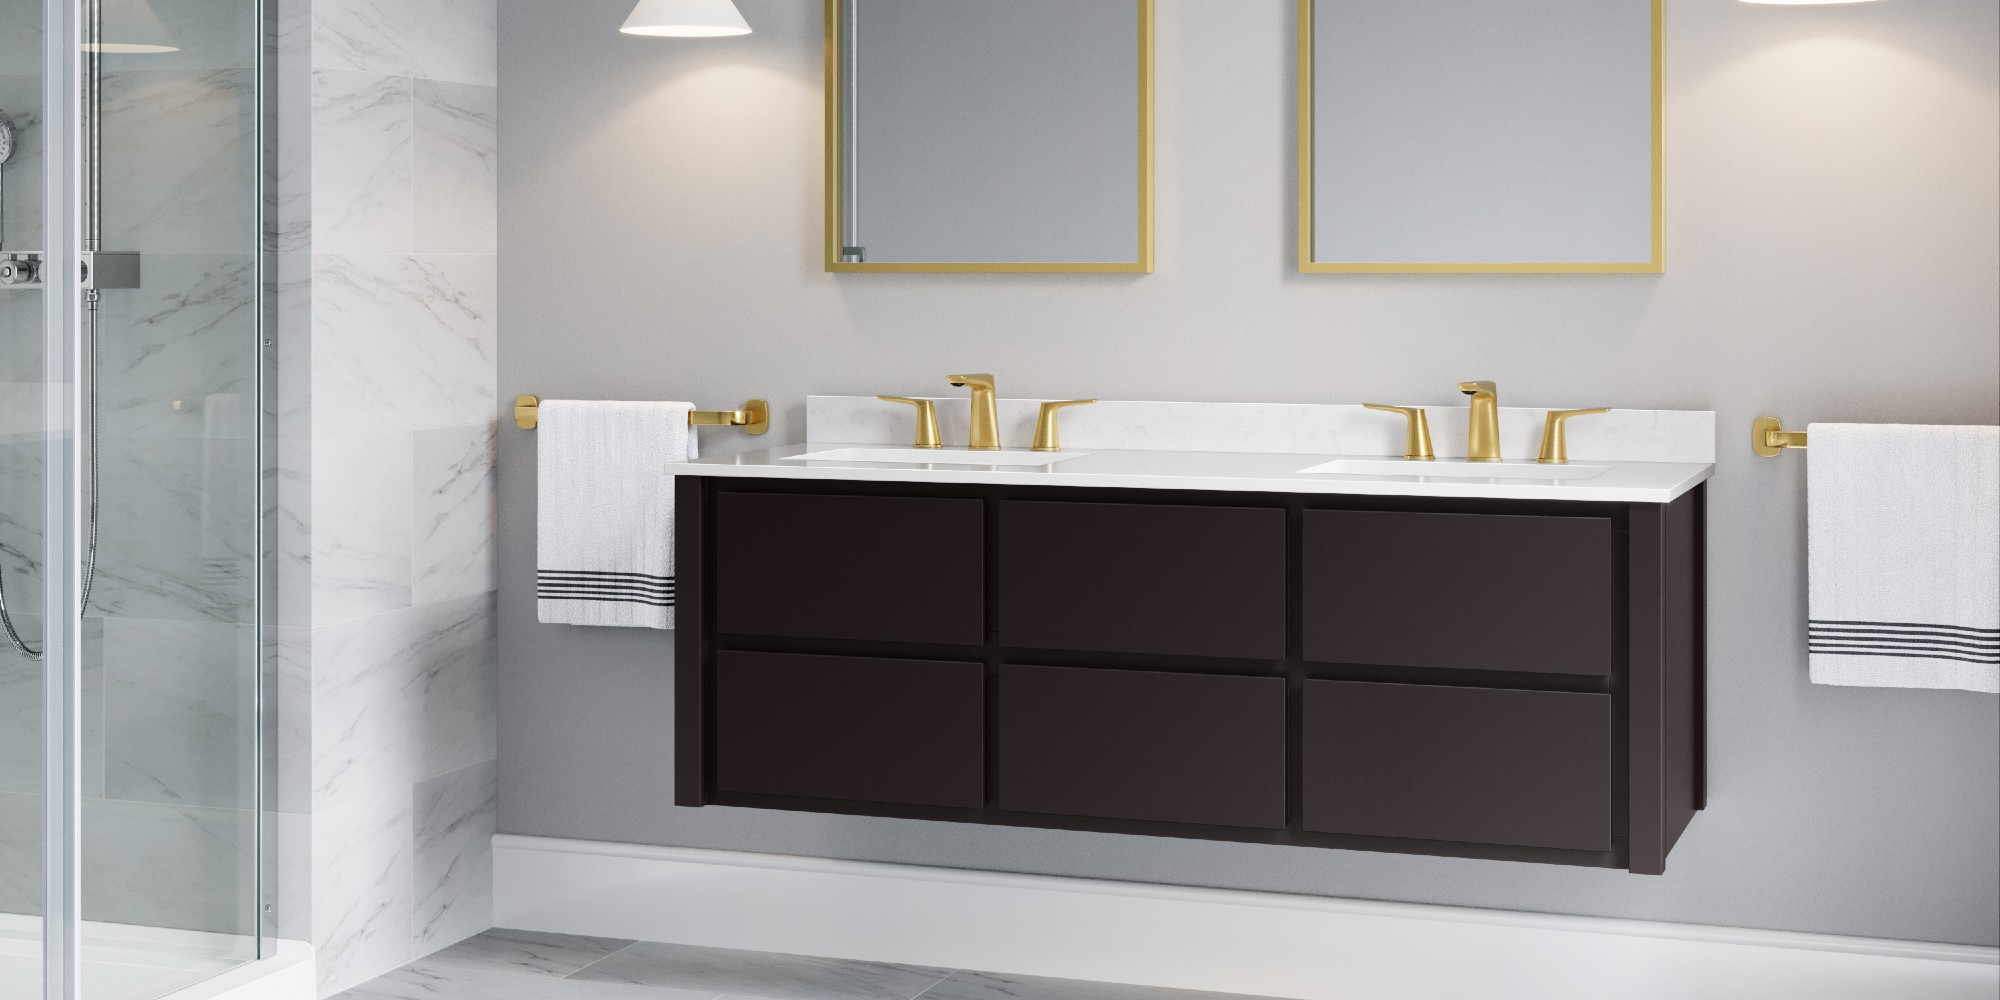 Frederick York Bathroom Vanity Design